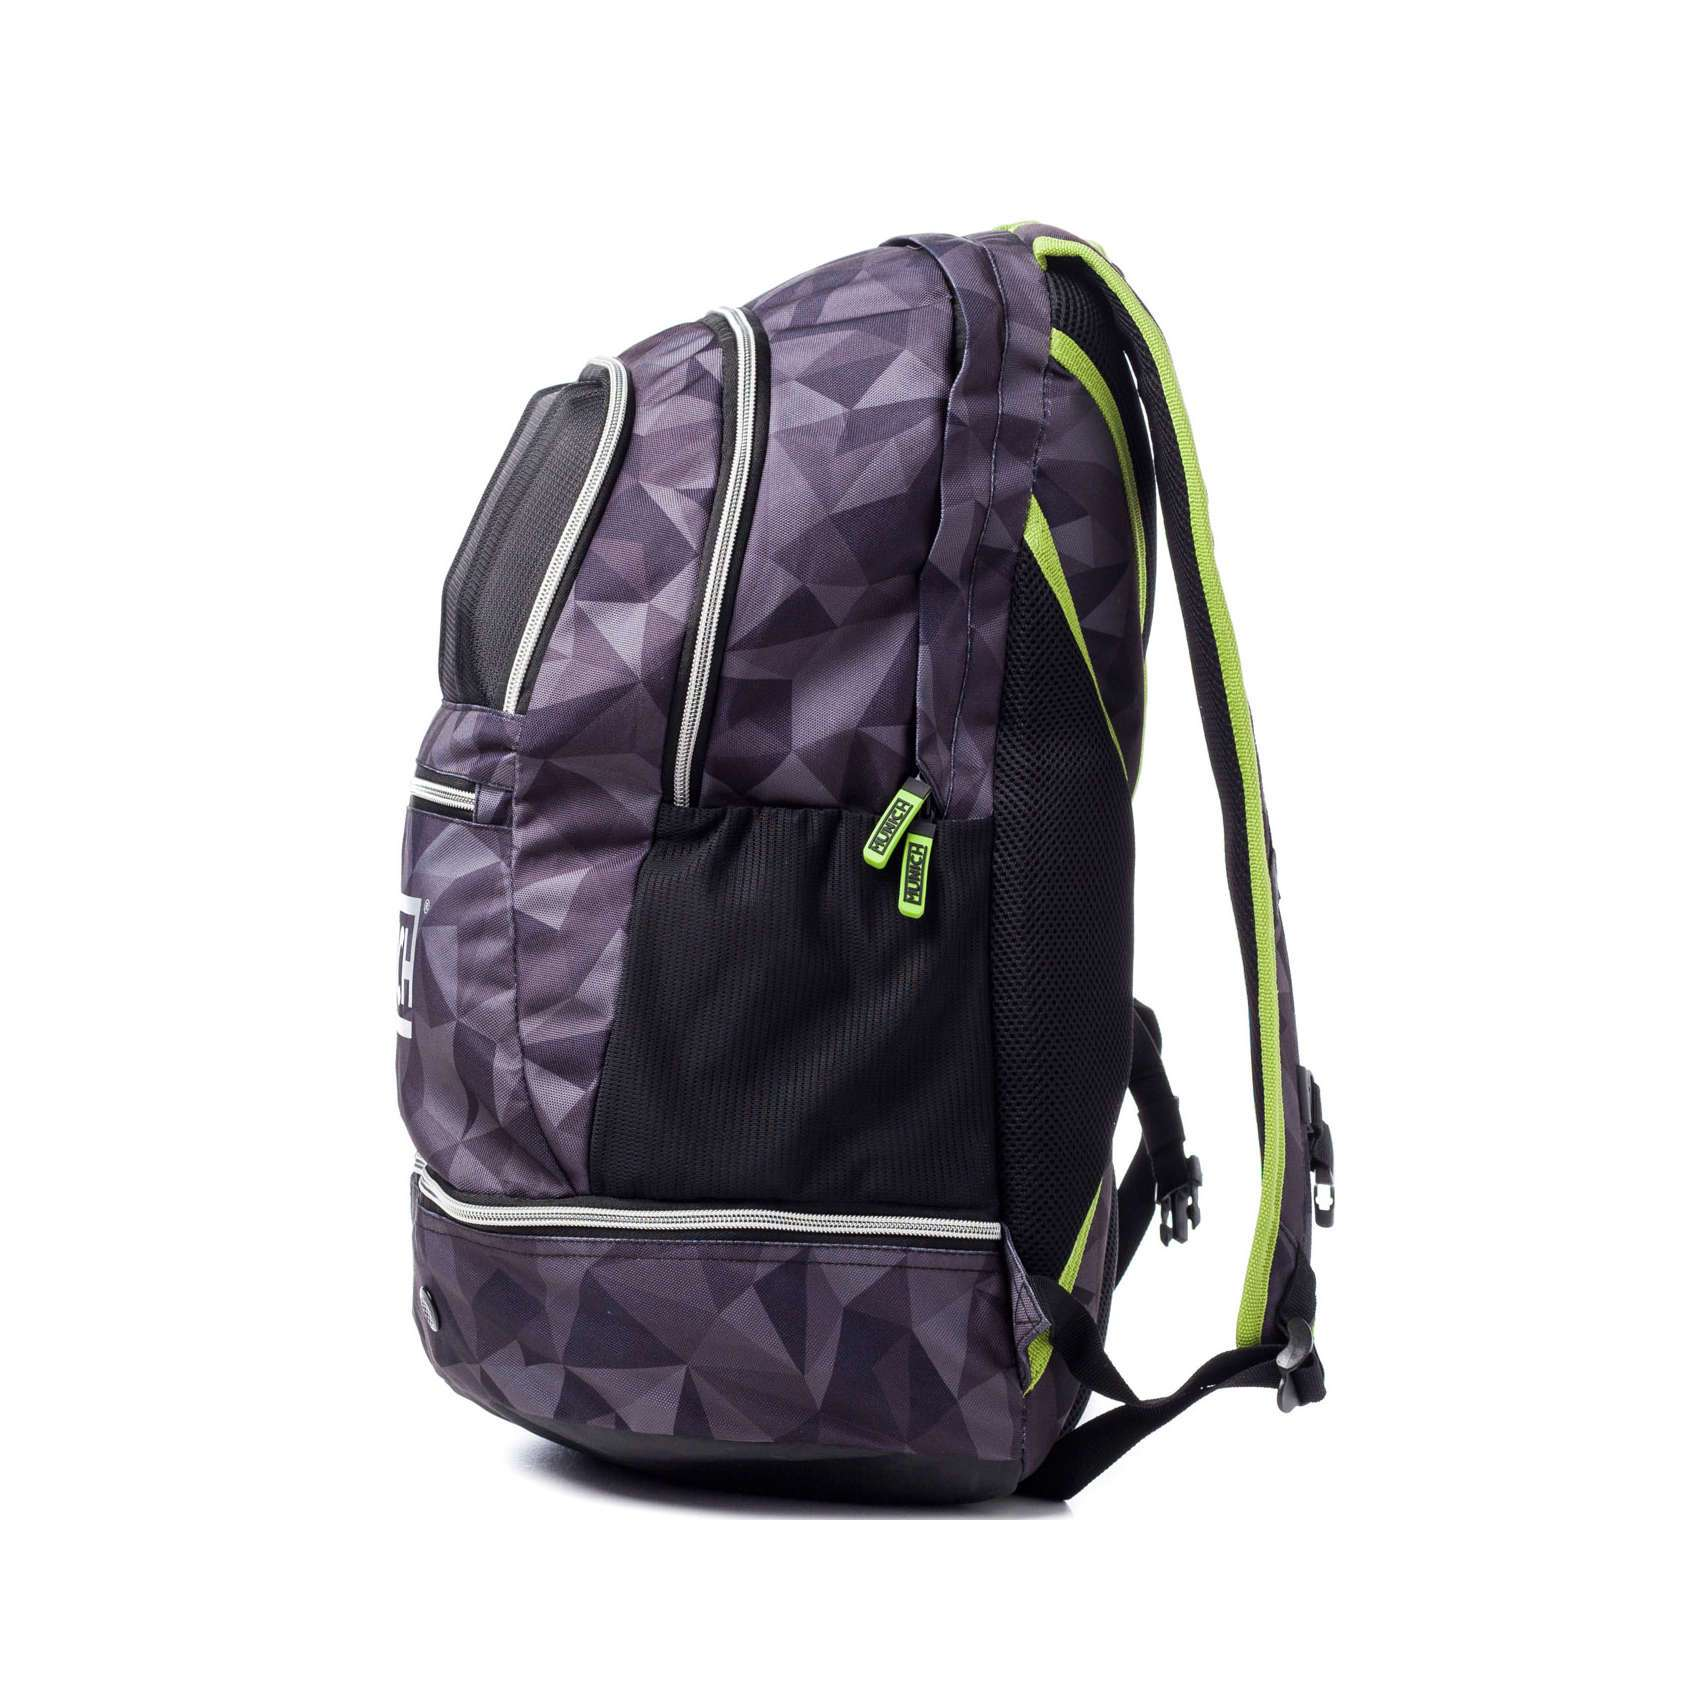 PAD BACKPACK 7011831